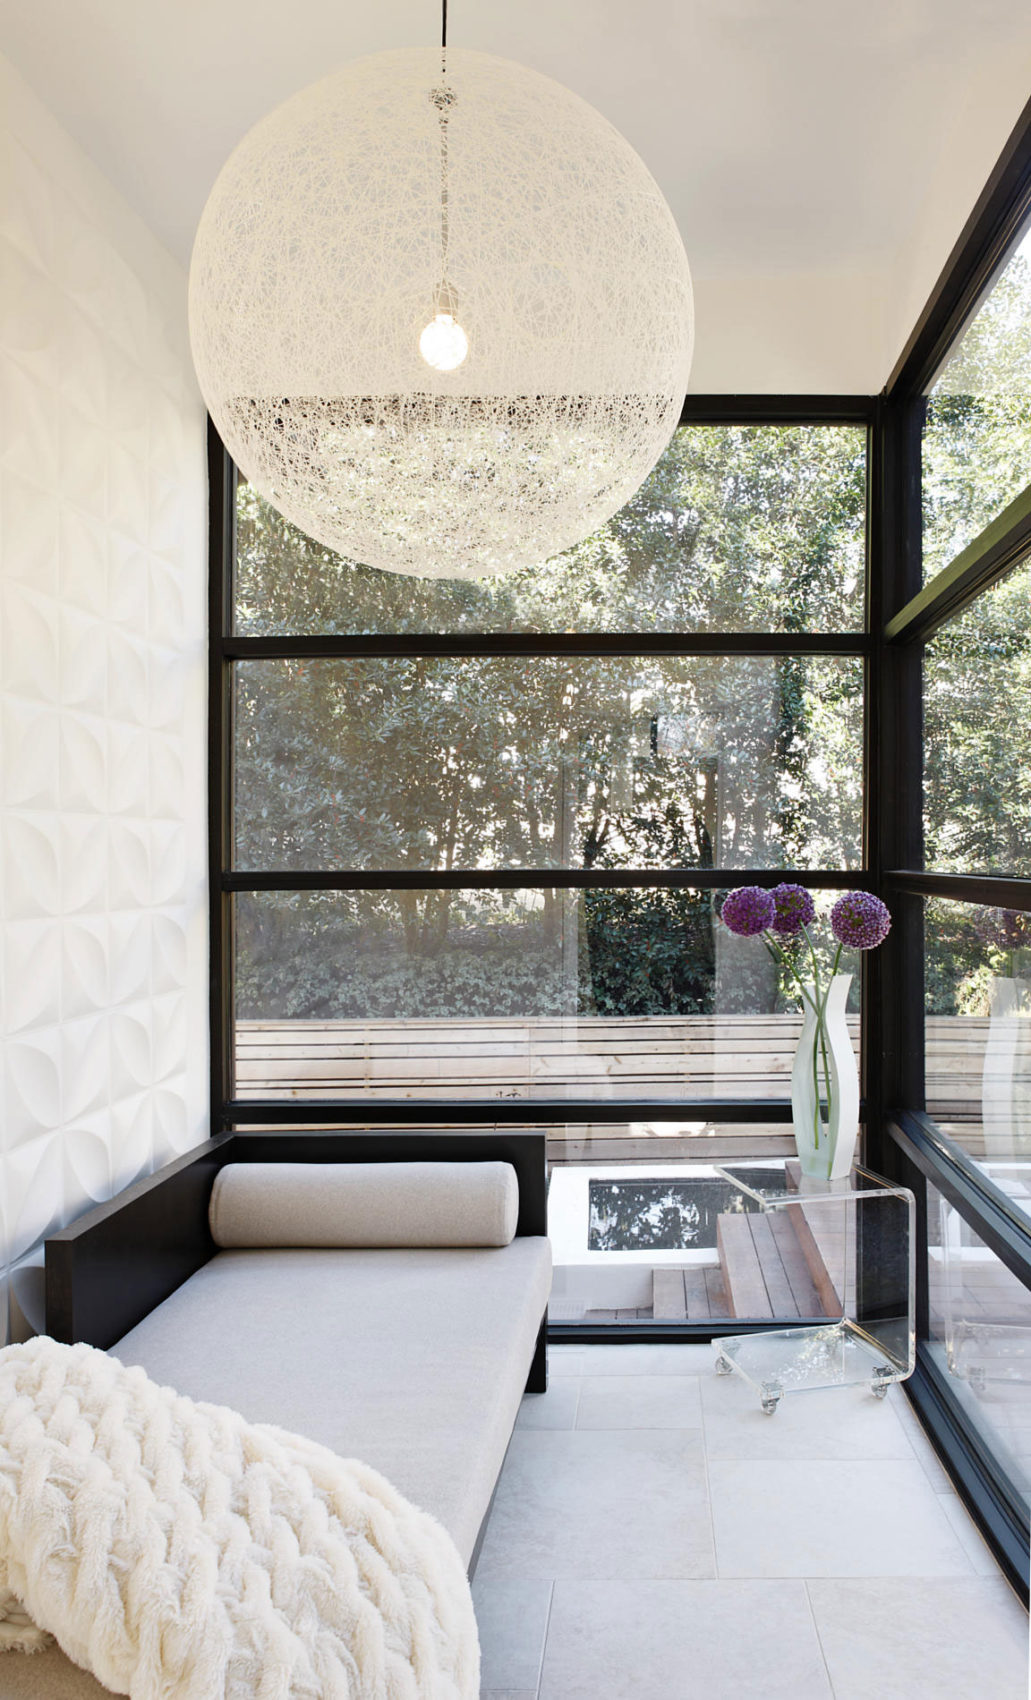 Ansley Modern Interior by Habachy Designs (7)